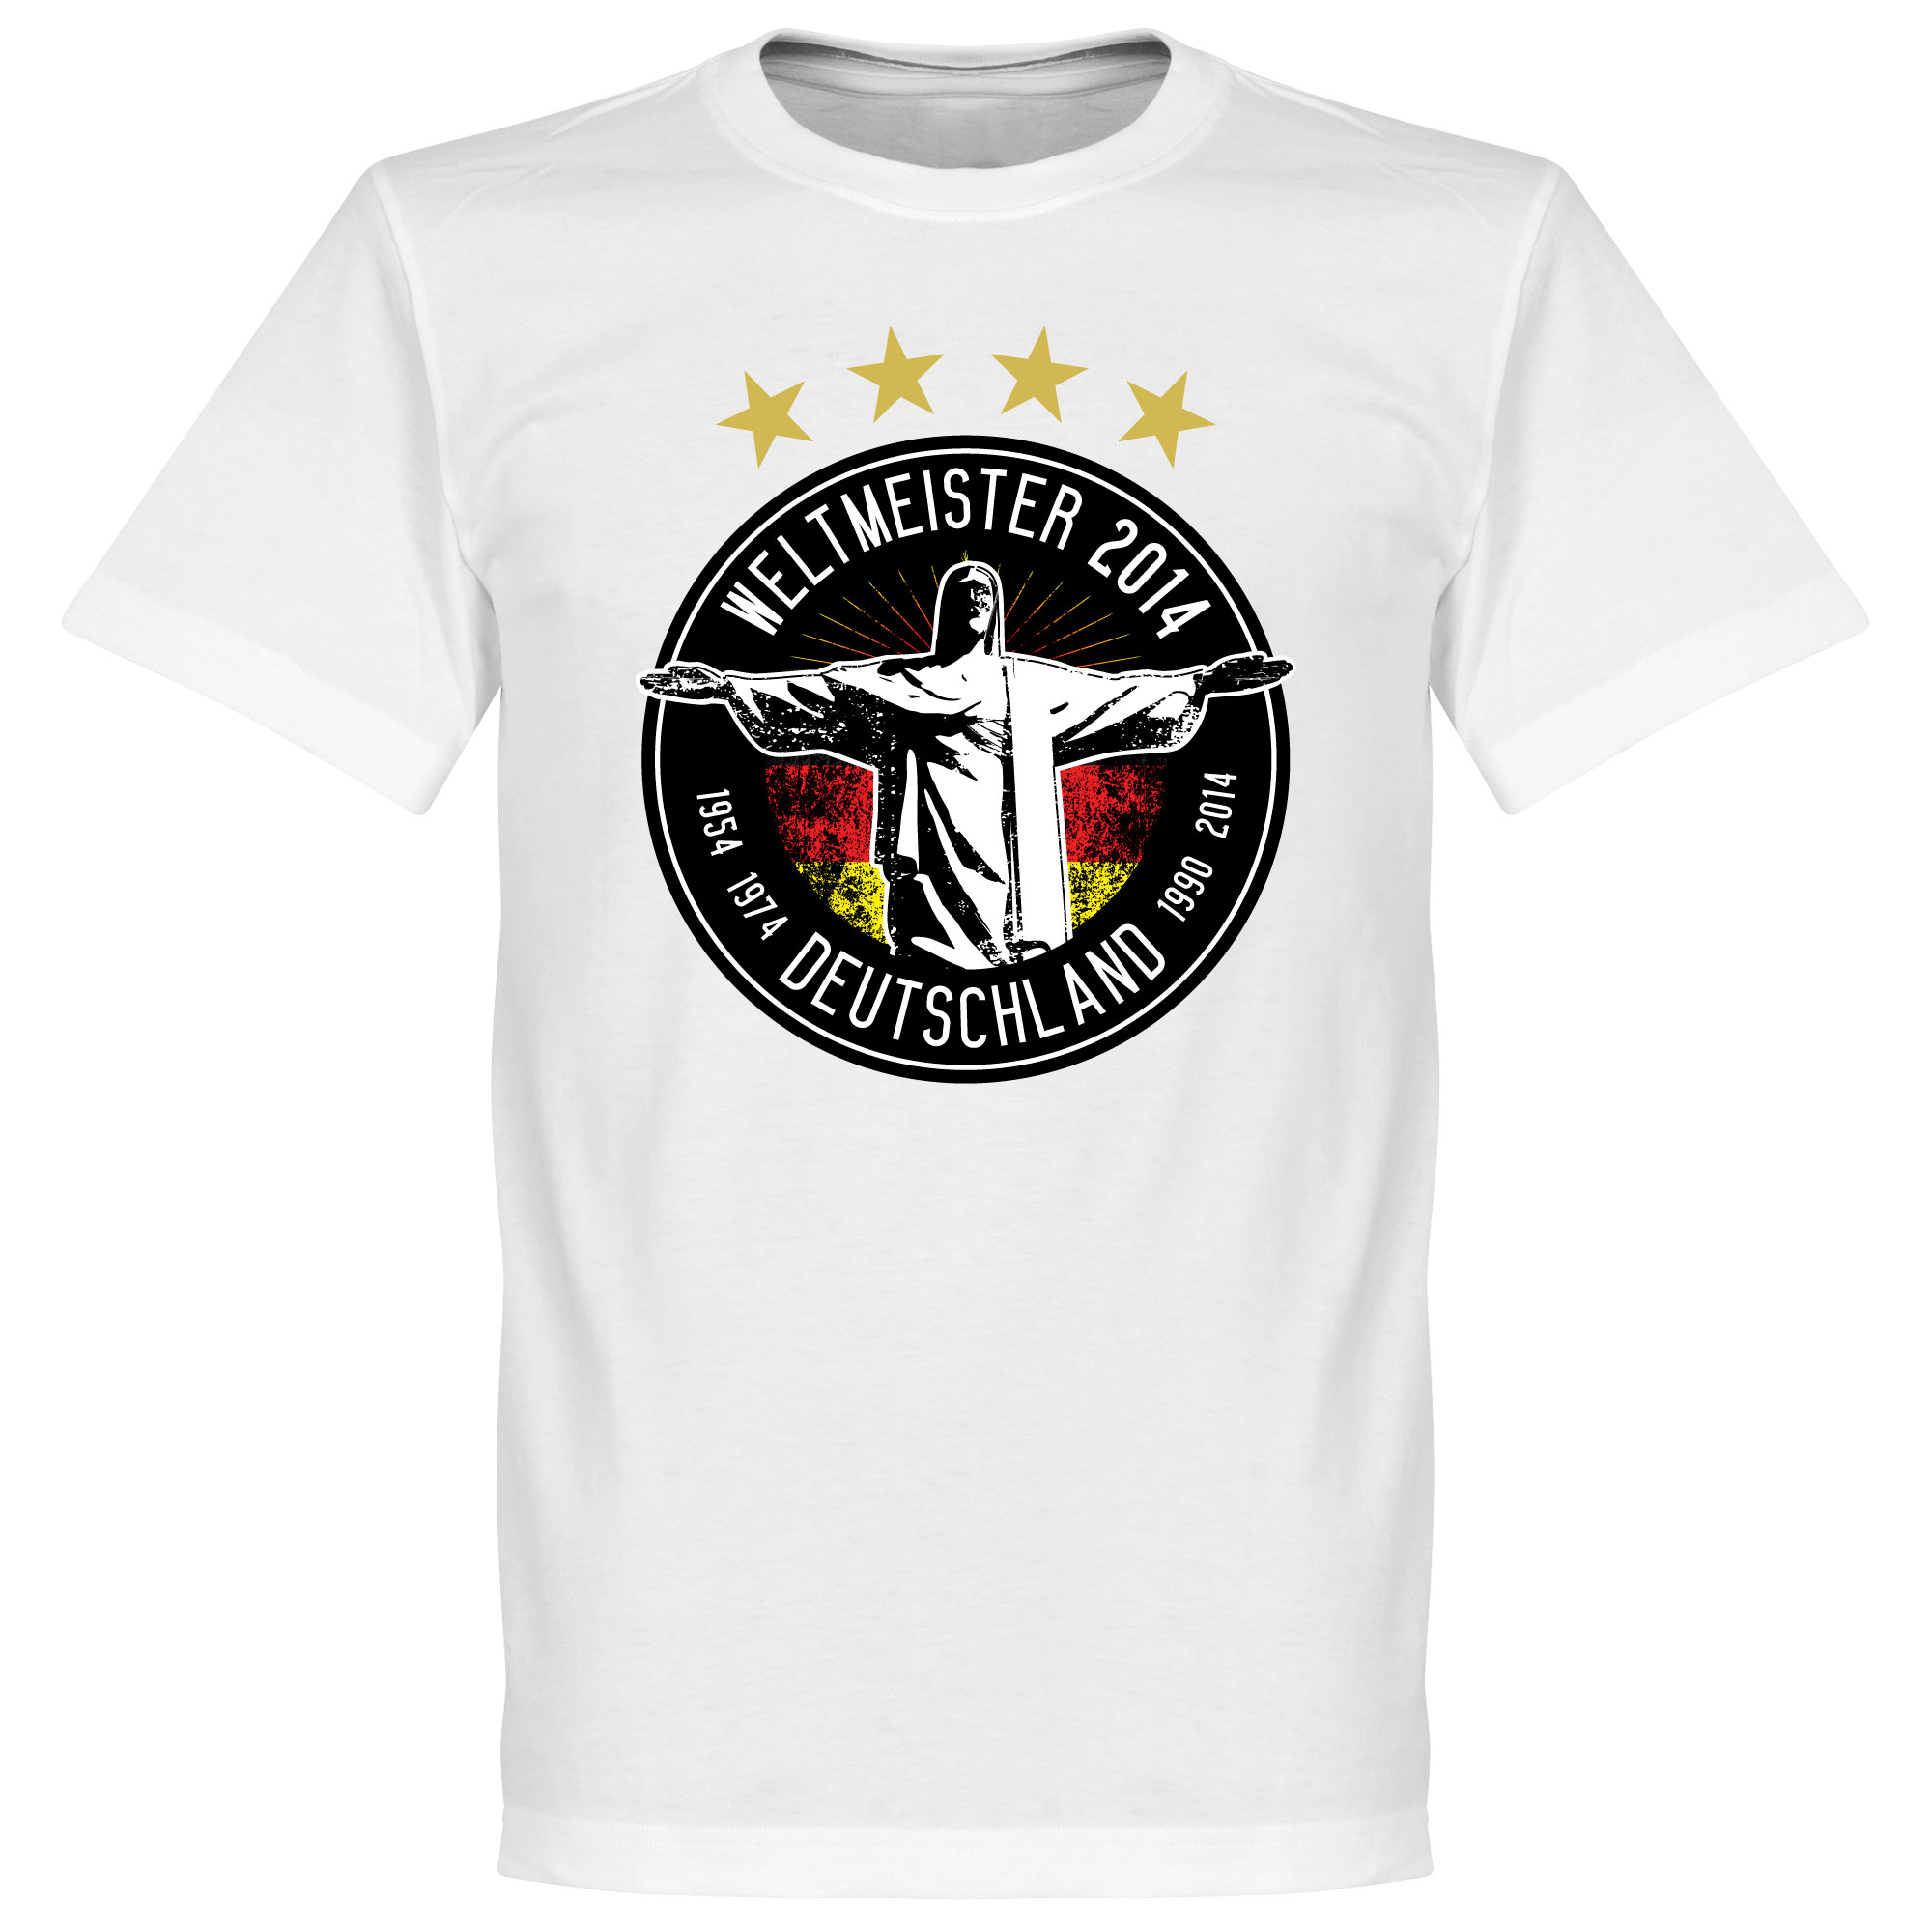 Germany 2014 World Cup Winners Tee - White - XXXXL